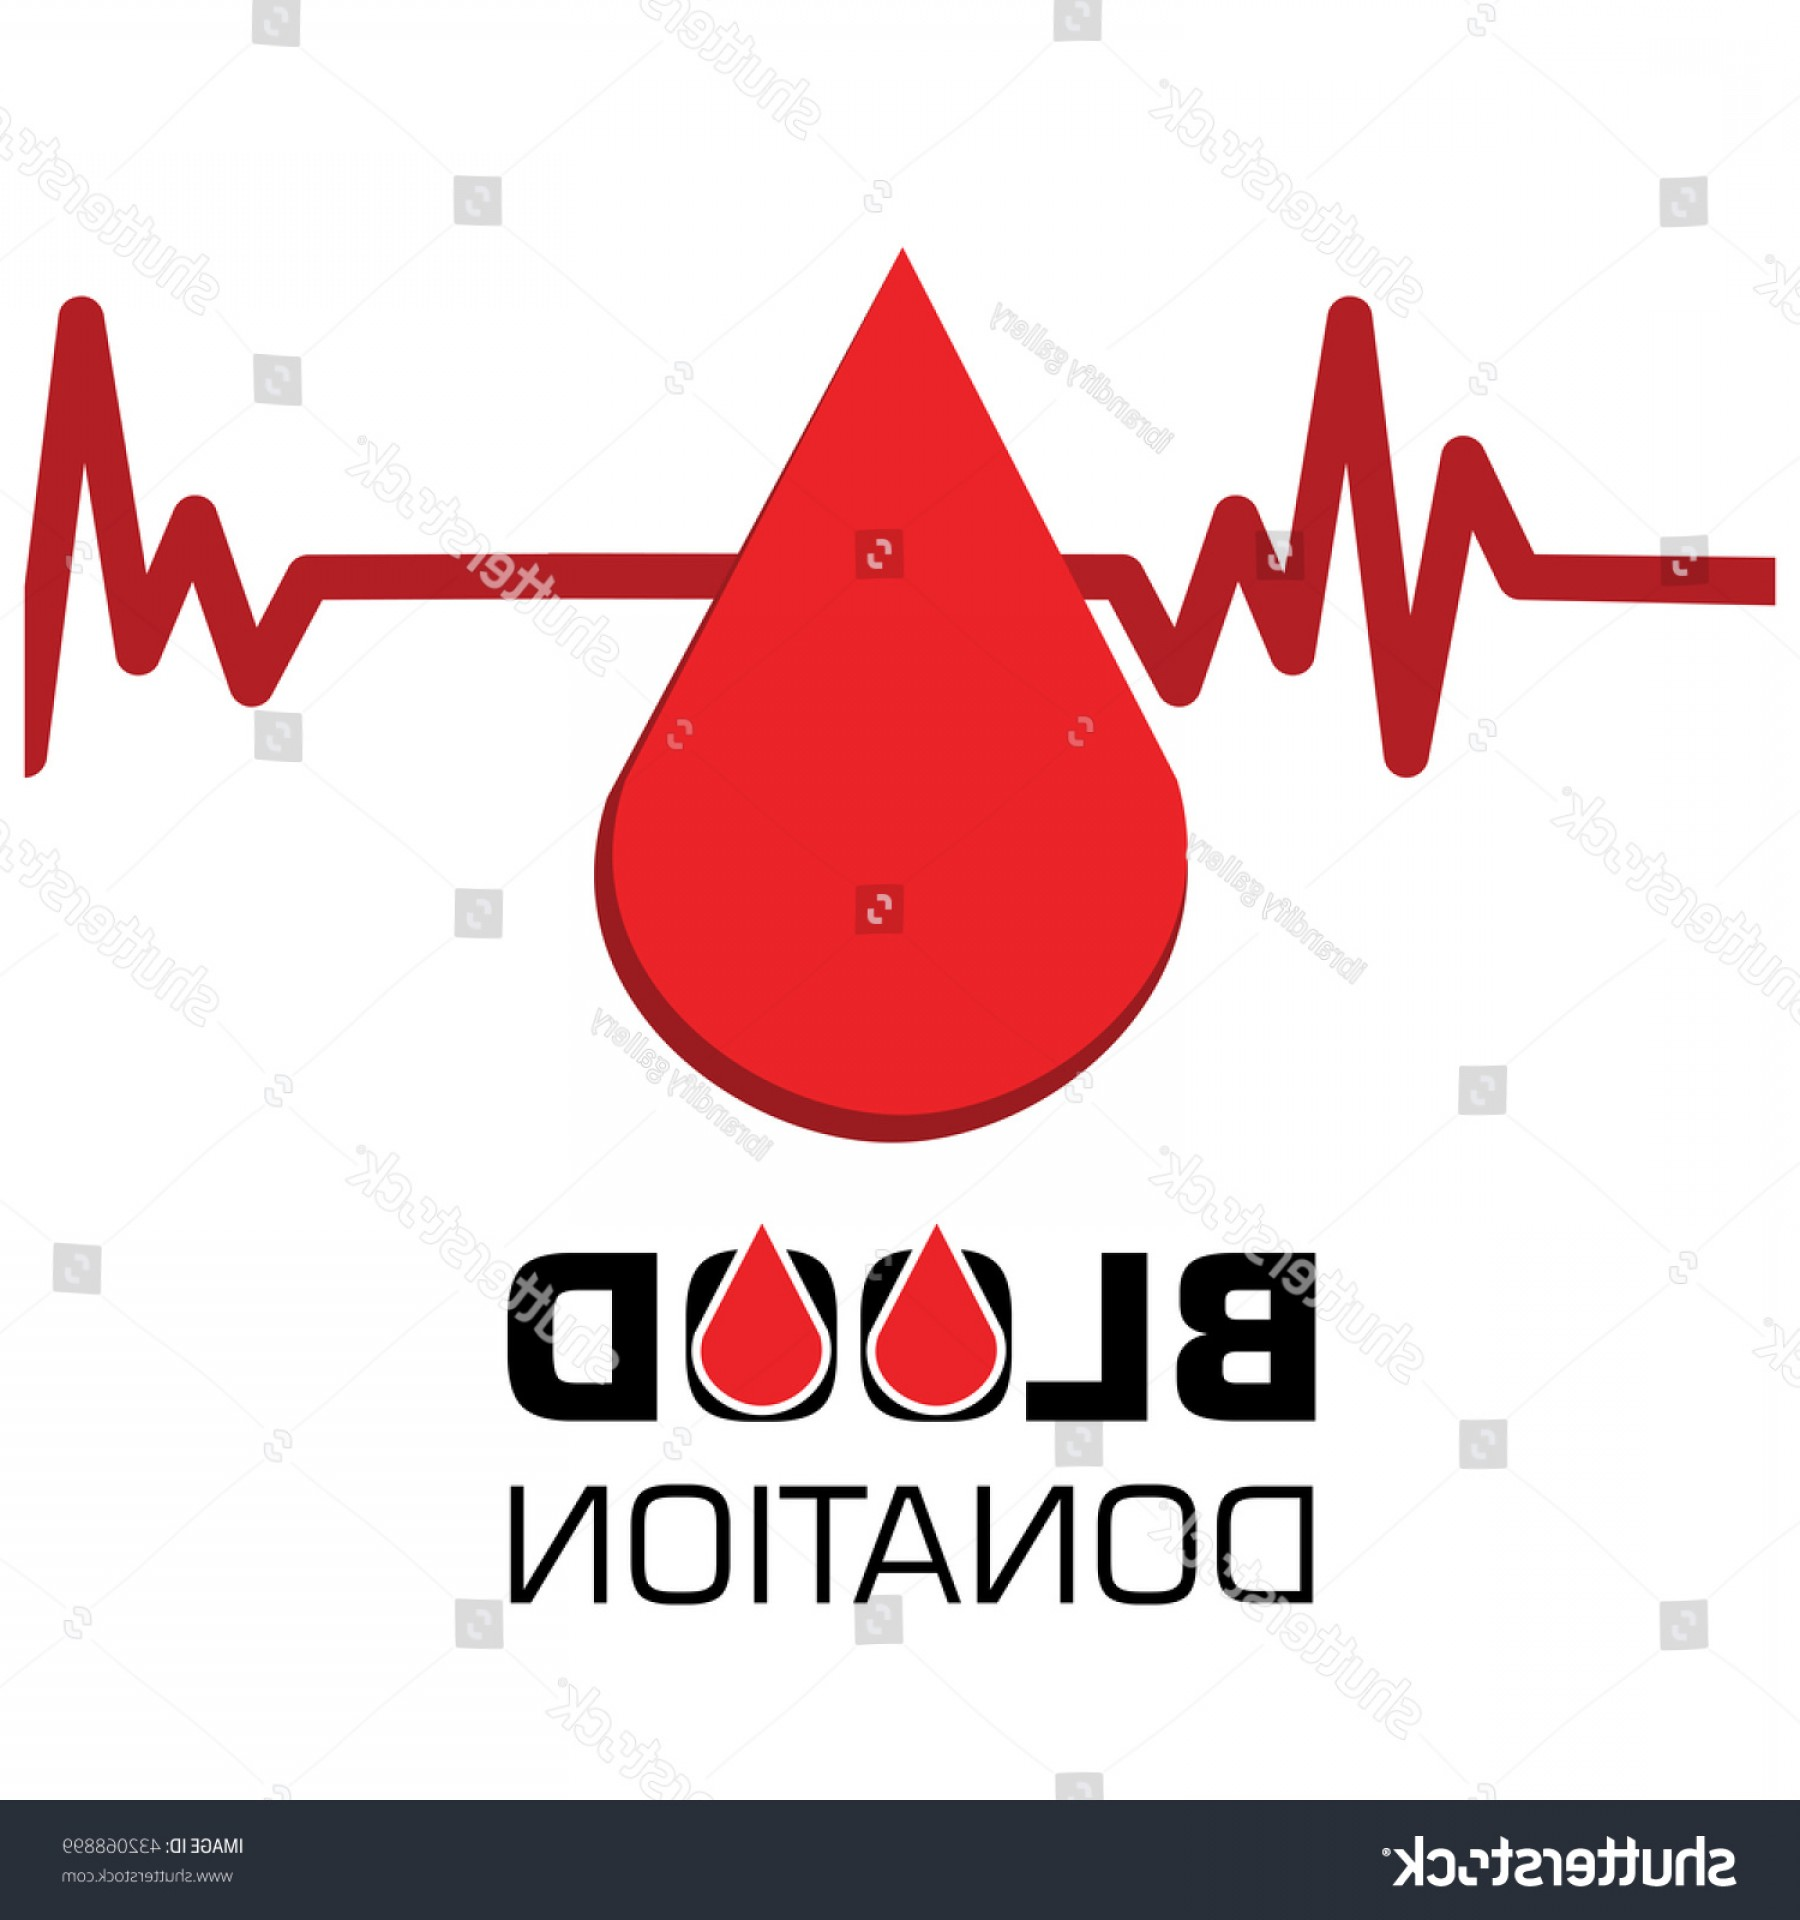 Positive EKG Vectors: Ecg Blood Drop Donation Concept World